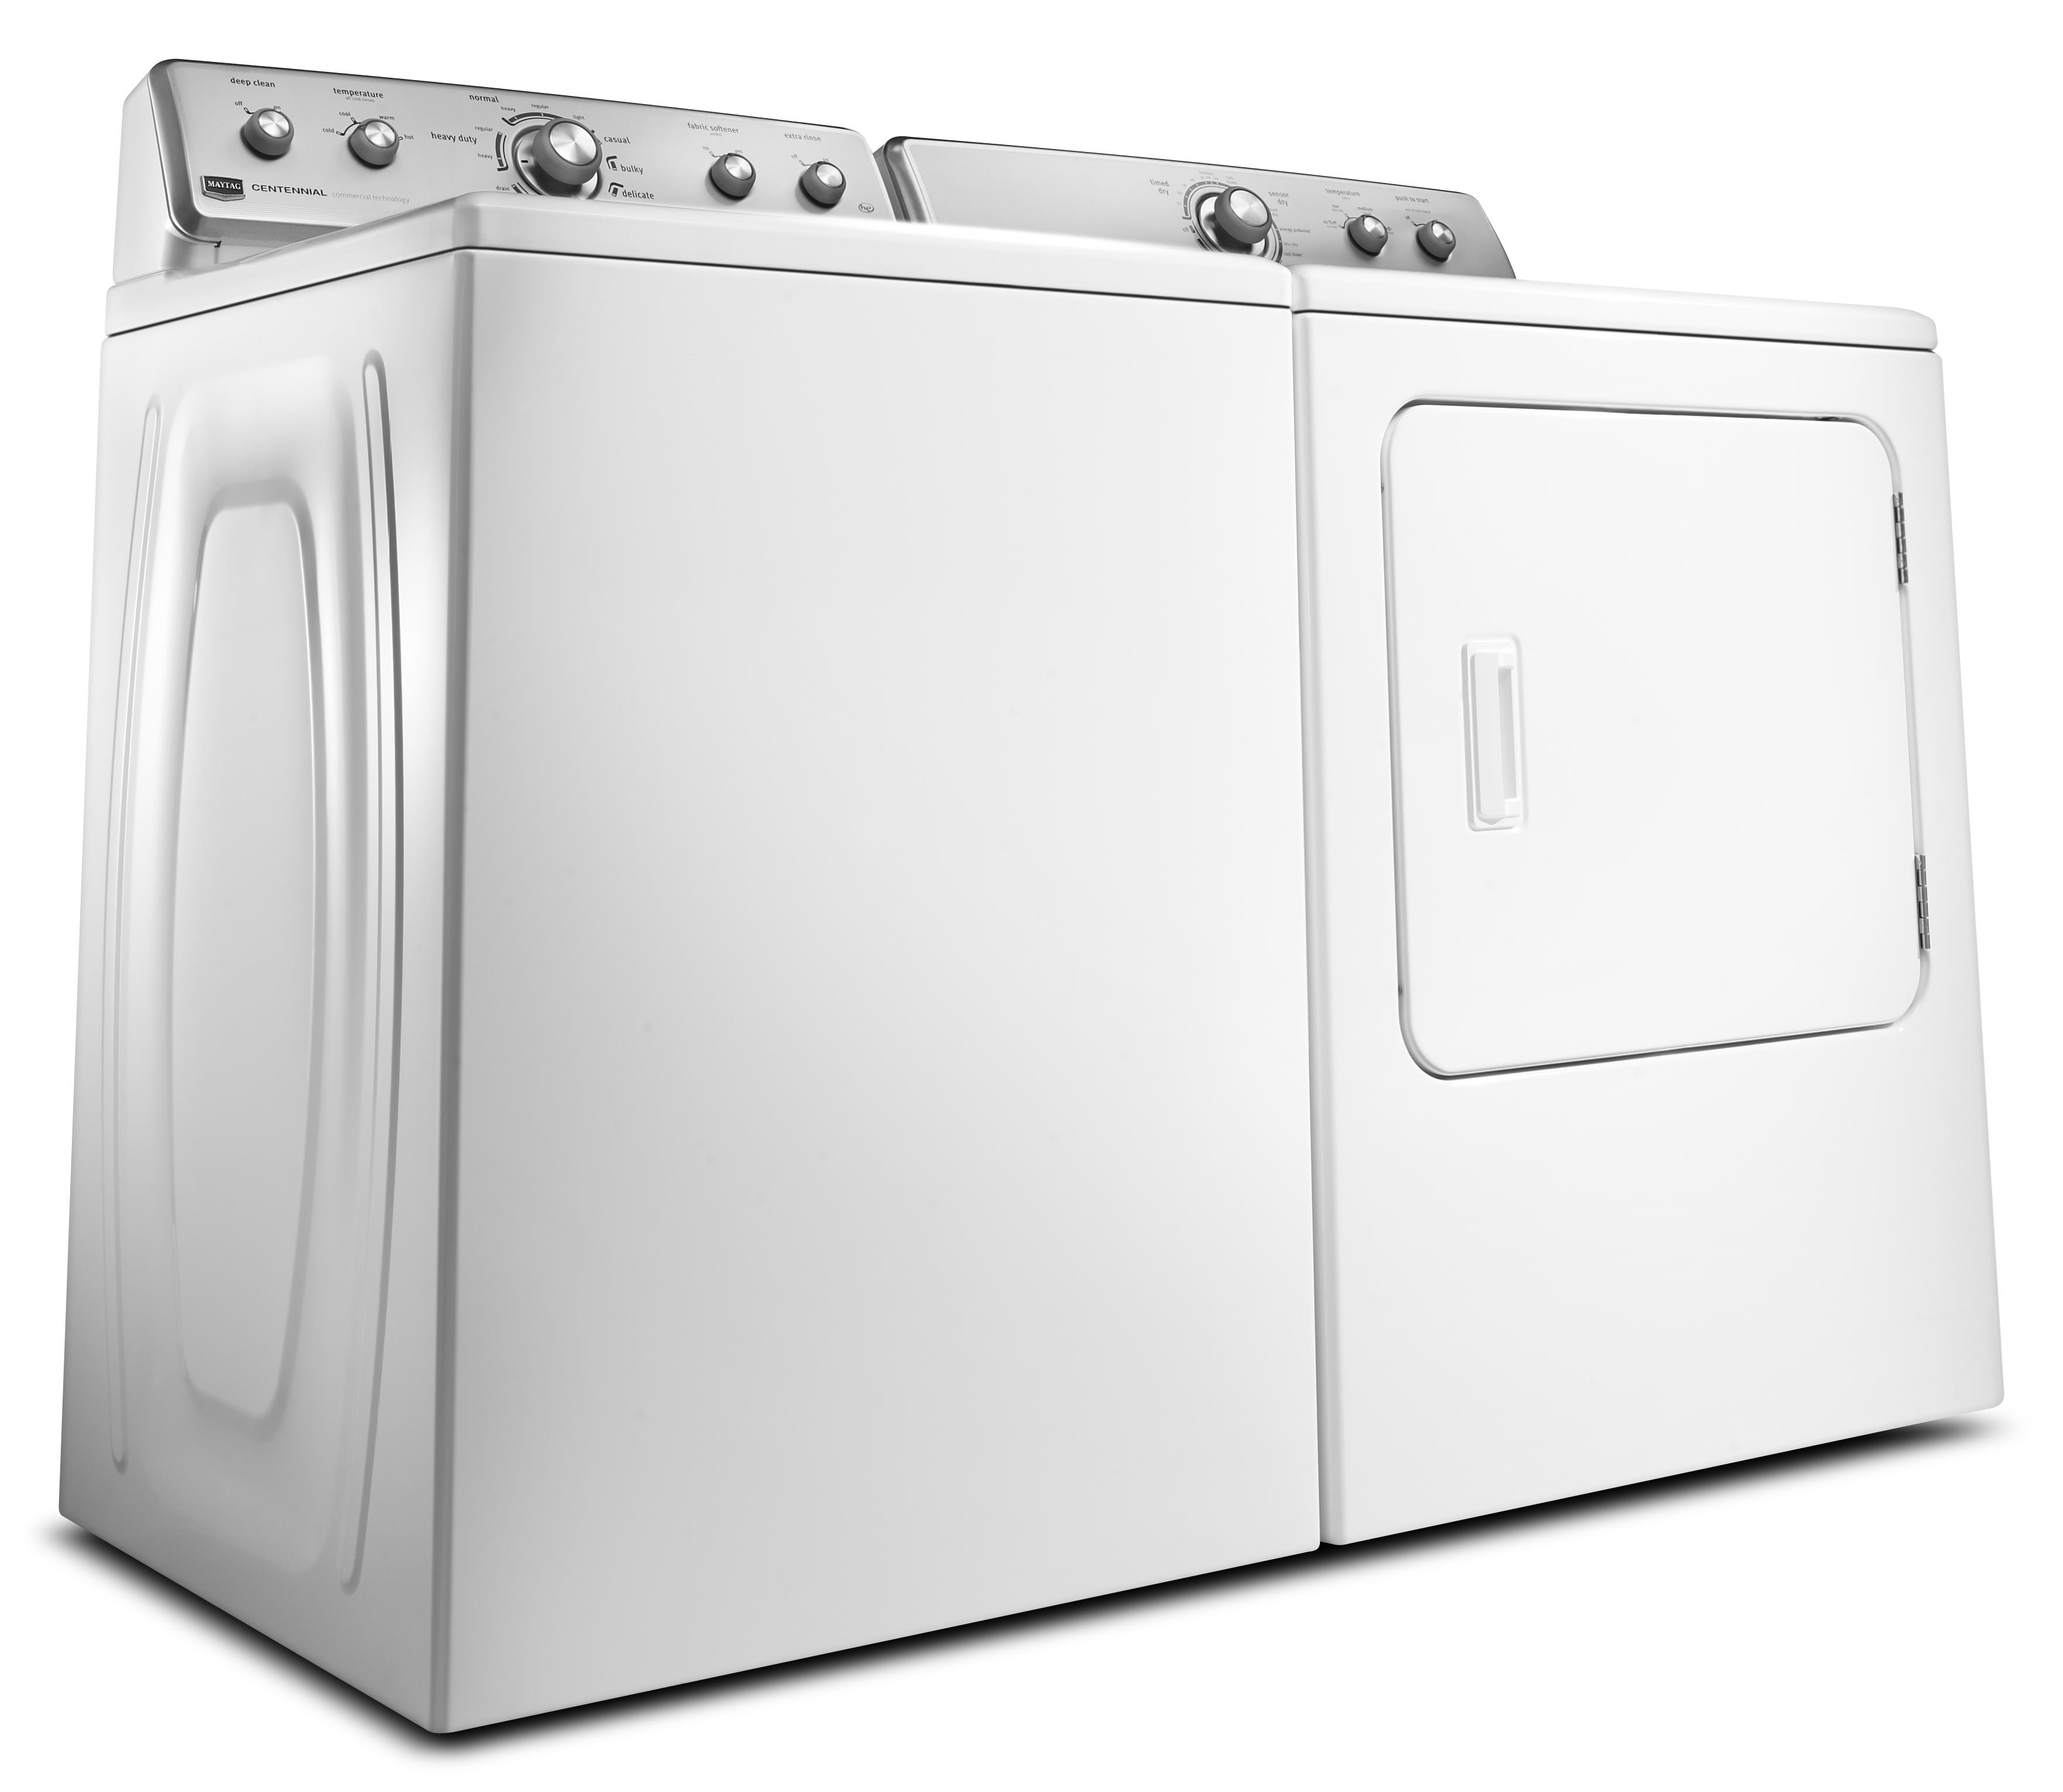 Maytag Mgdc300xw7 0 Cu Ft Front Load Centennial Gas